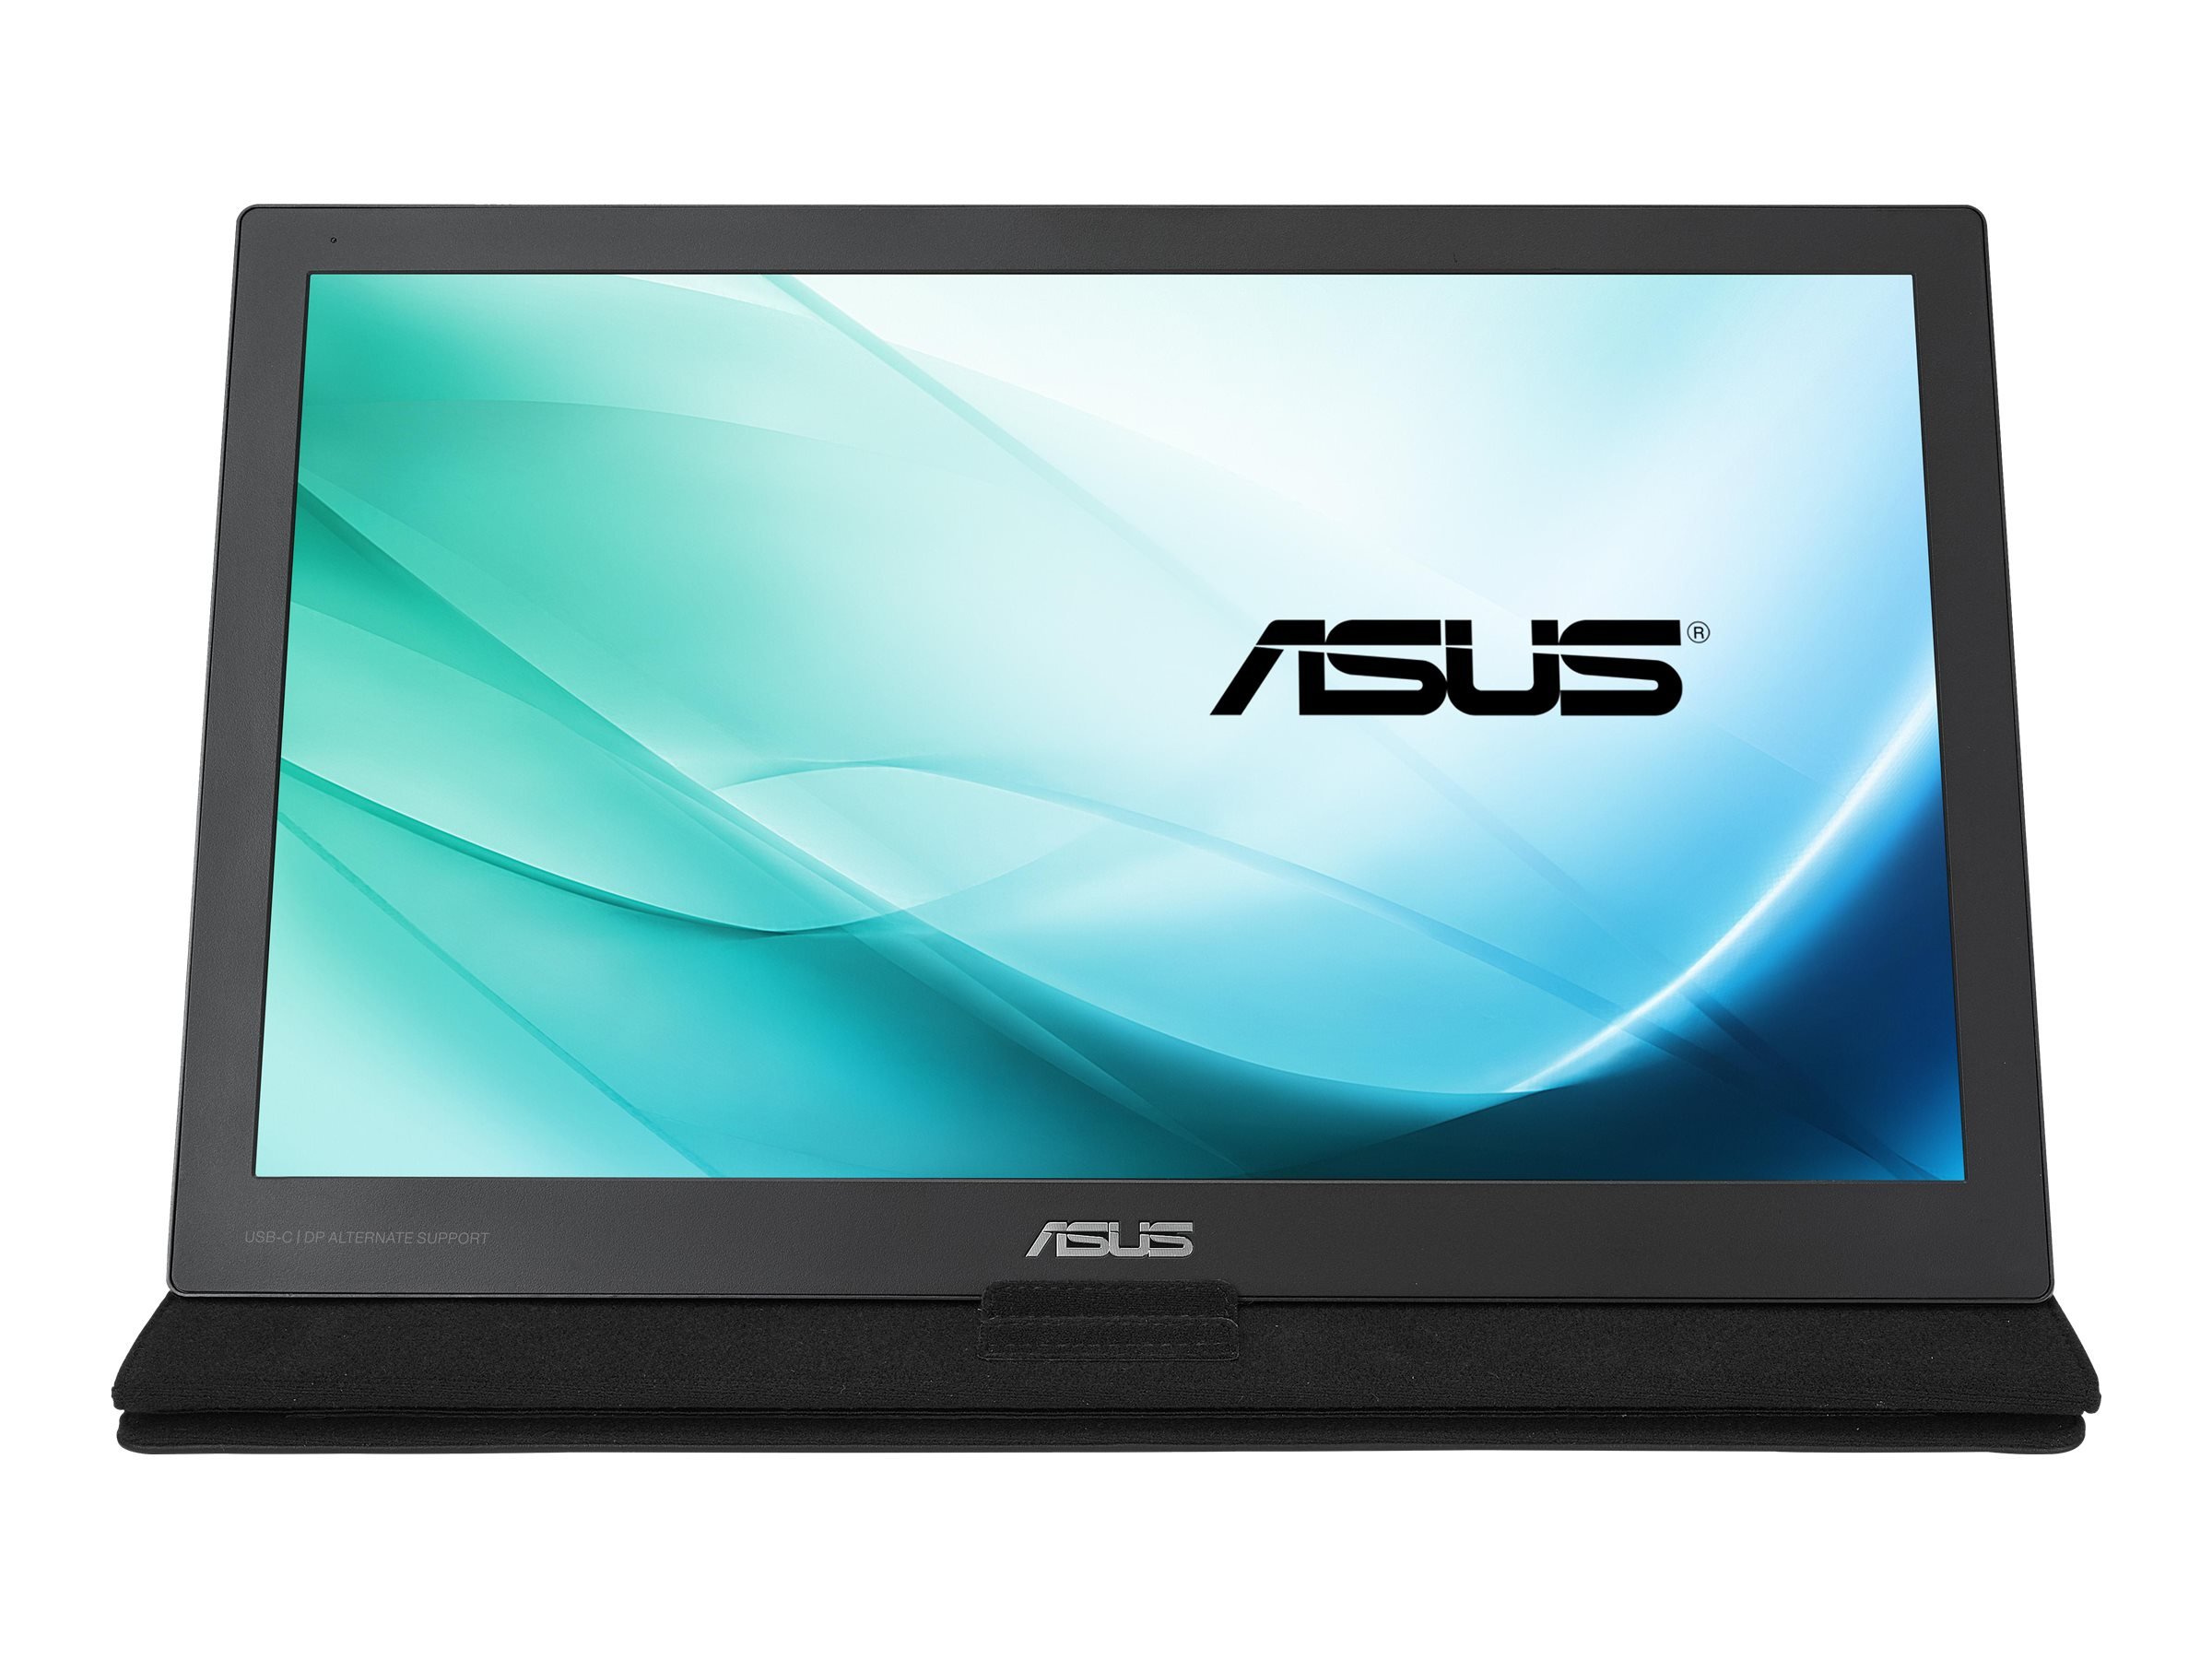 "Vorschau: ASUS MB169C+ - LED-Monitor - 39.6 cm (15.6"") - tragbar - 1920 x 1080 Full HD (1080p)"